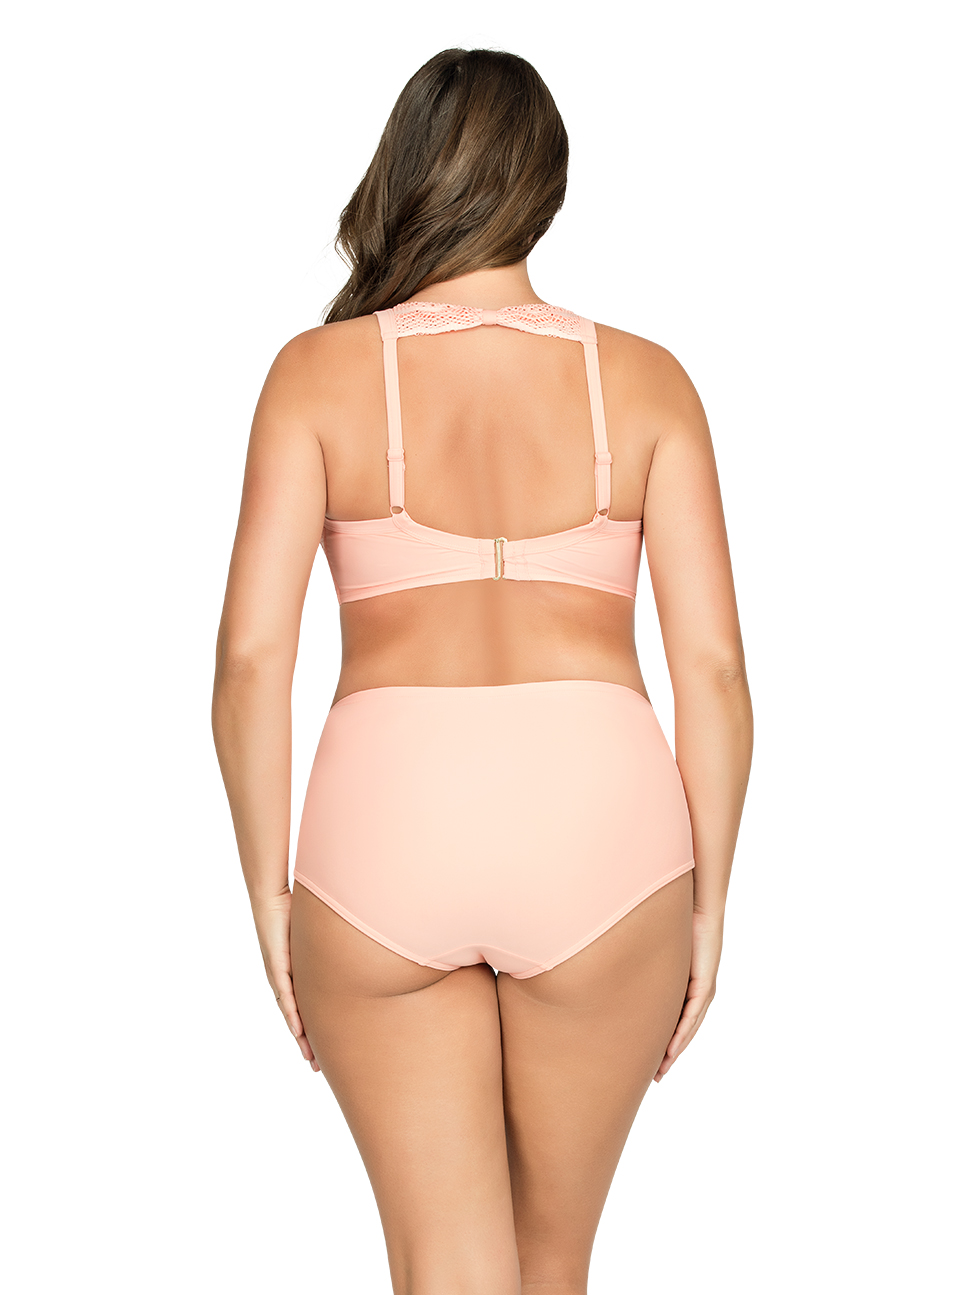 PARFAIT Keira HalterNeckBikiniTopS8071 HighWaistBikiniBottomS8075 Peach Back - Keira High-Waist Bikini Bottom Peach S8075